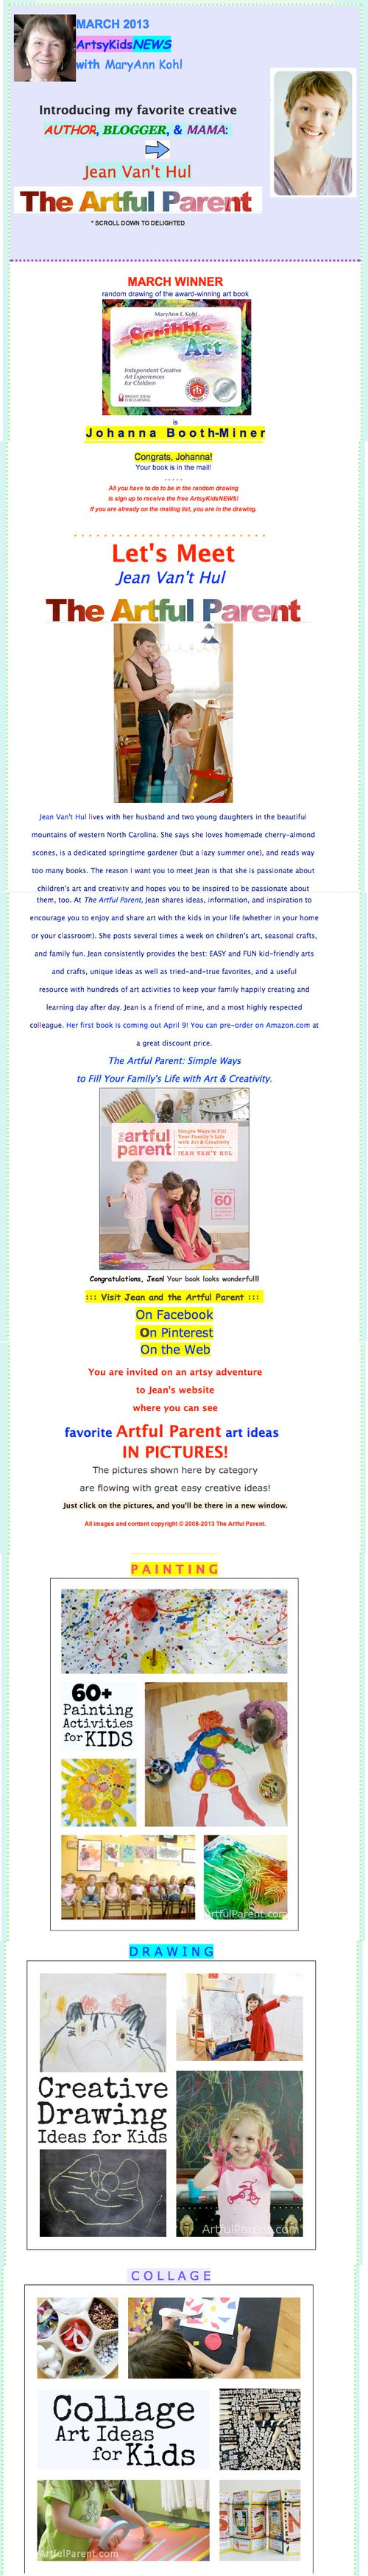 March 2013 artsykidsnews section one